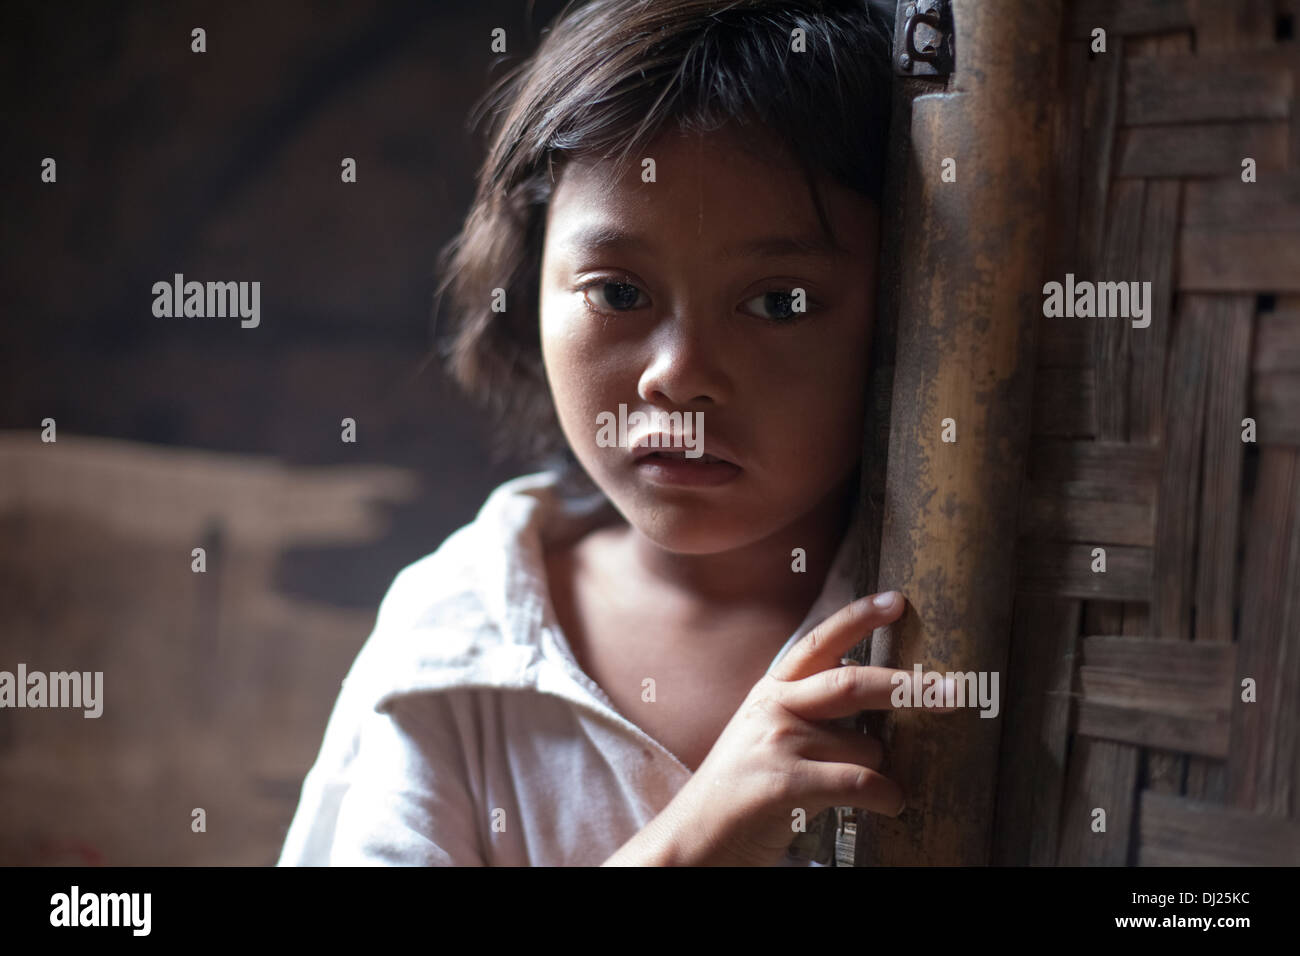 girl child poor bali poverty sad challenged extreme hold feed poor